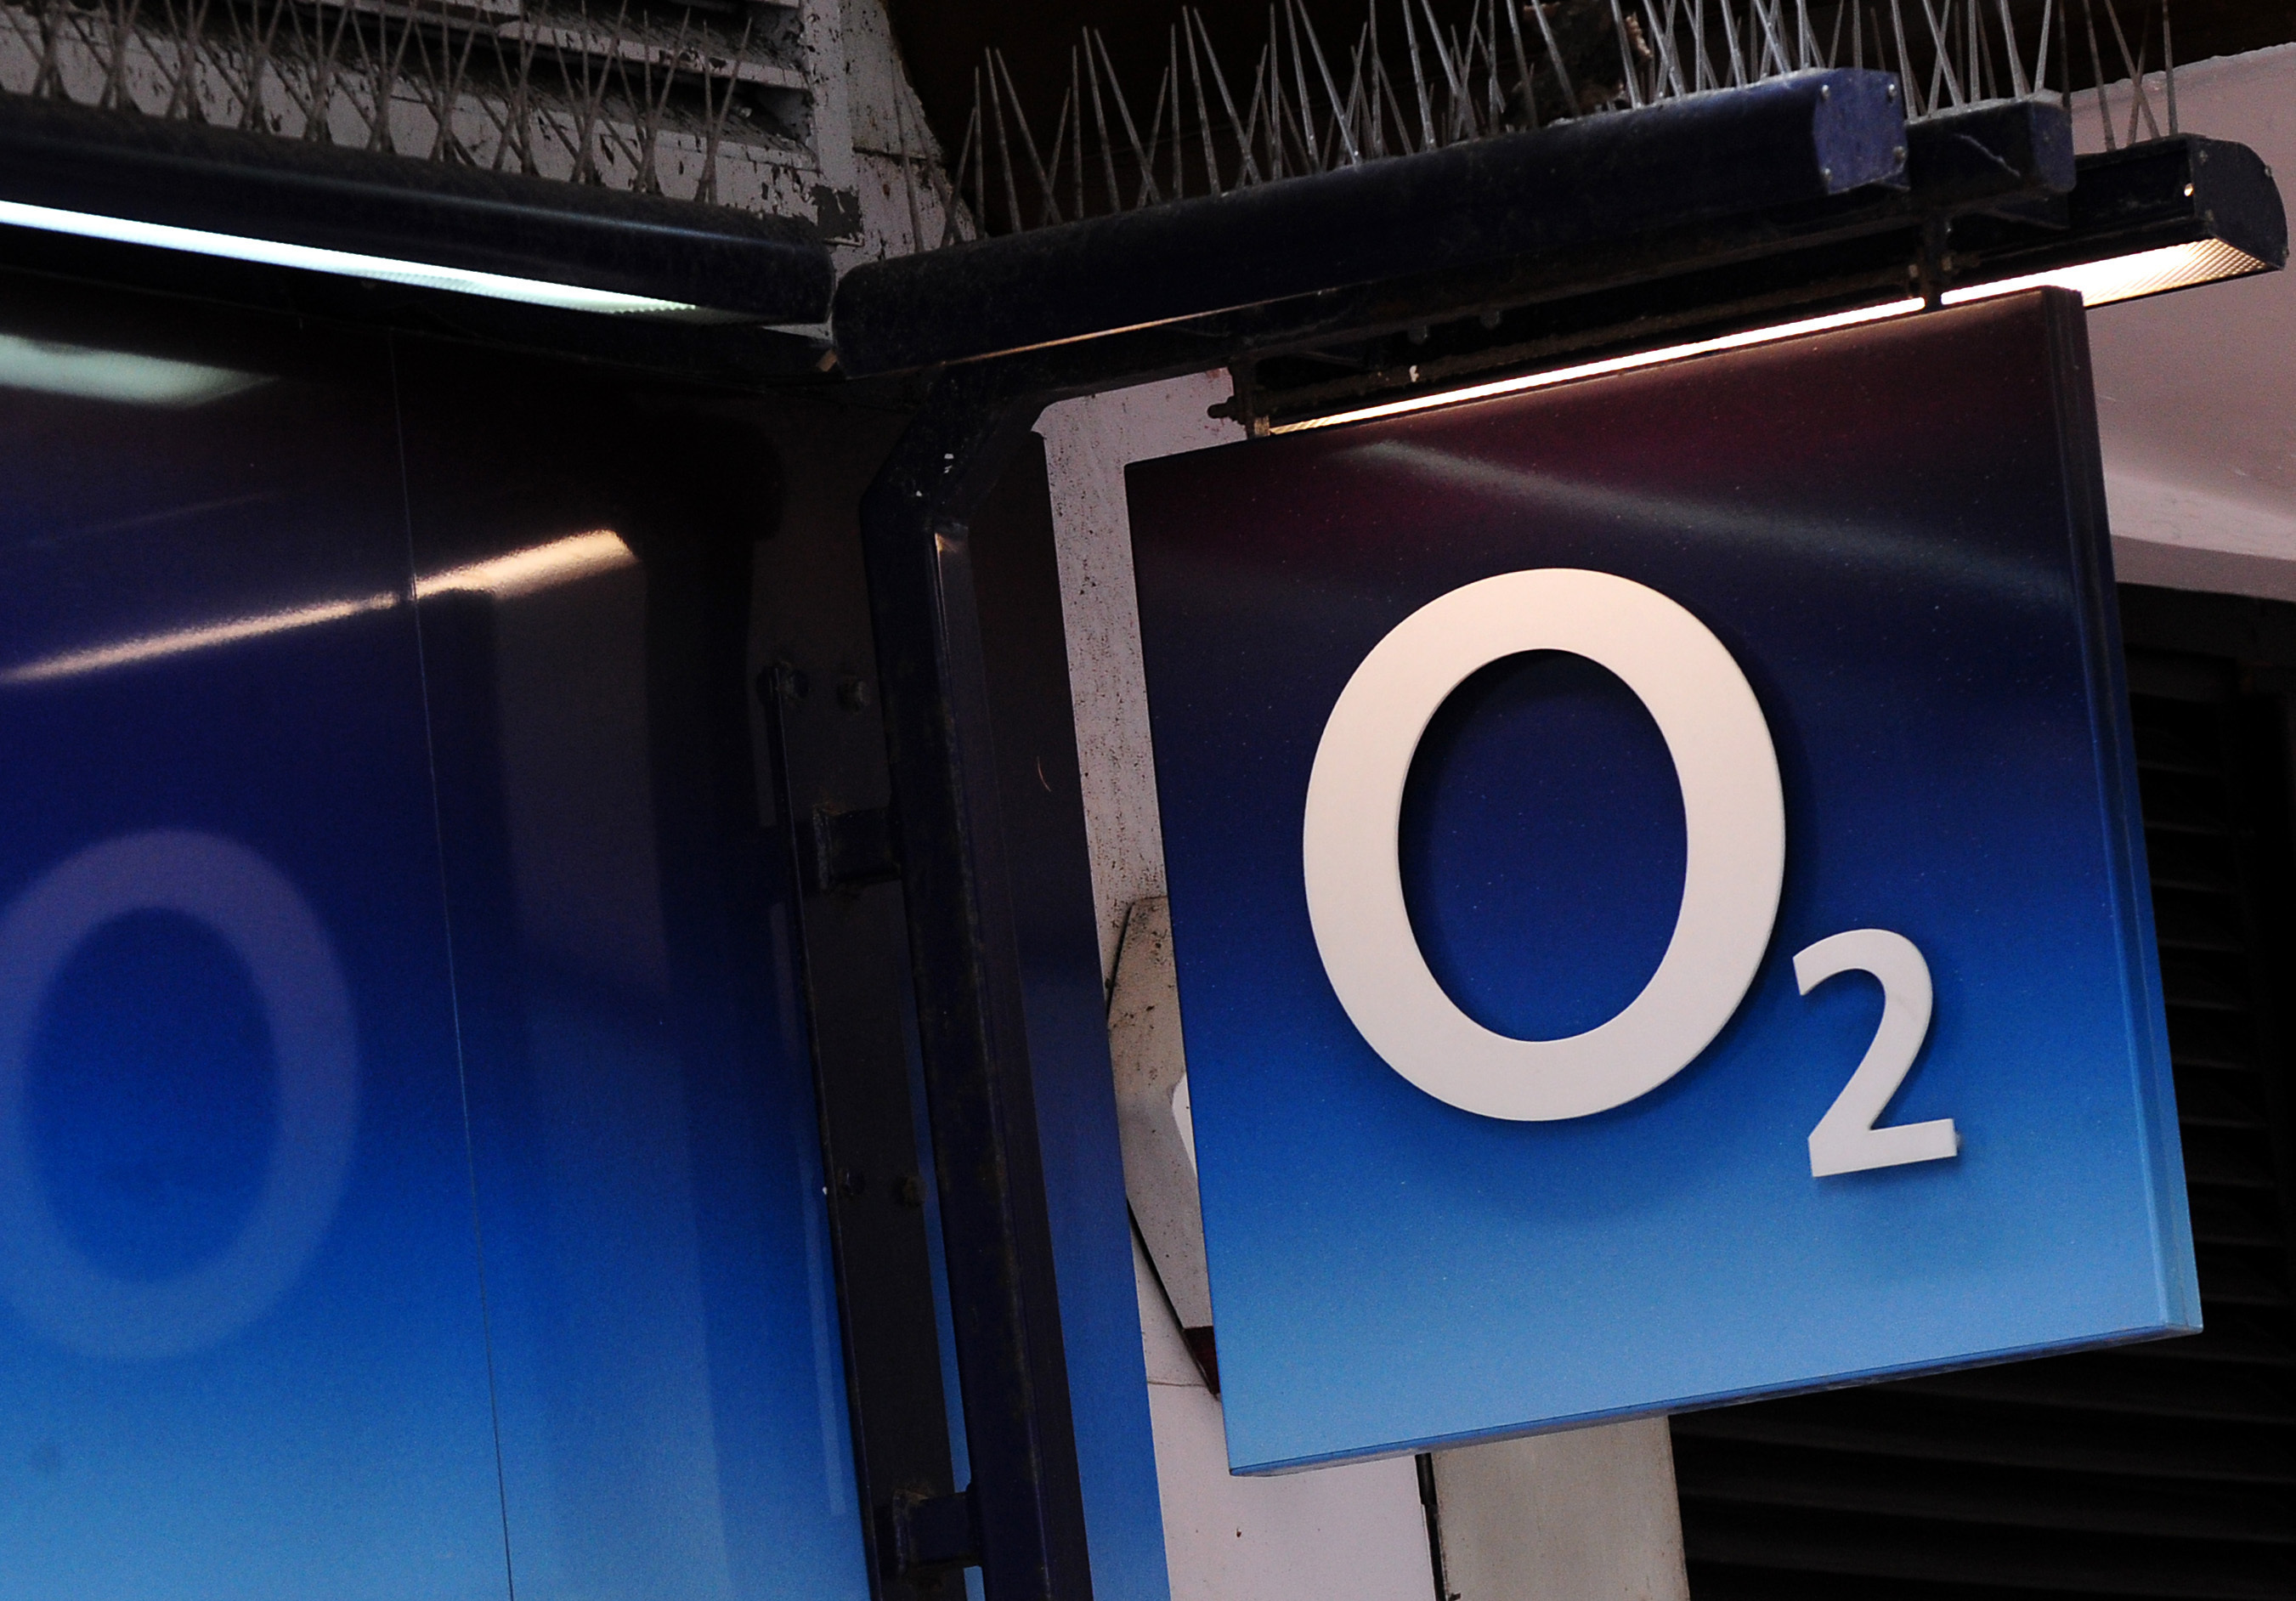 O2 said that by the end of this year, more than 800 Scottish towns and villages will have been connected, from Ben Nevis in the Highlands to Aberdeen and rural areas around Inverness (Rui Vieira/PA Wire)